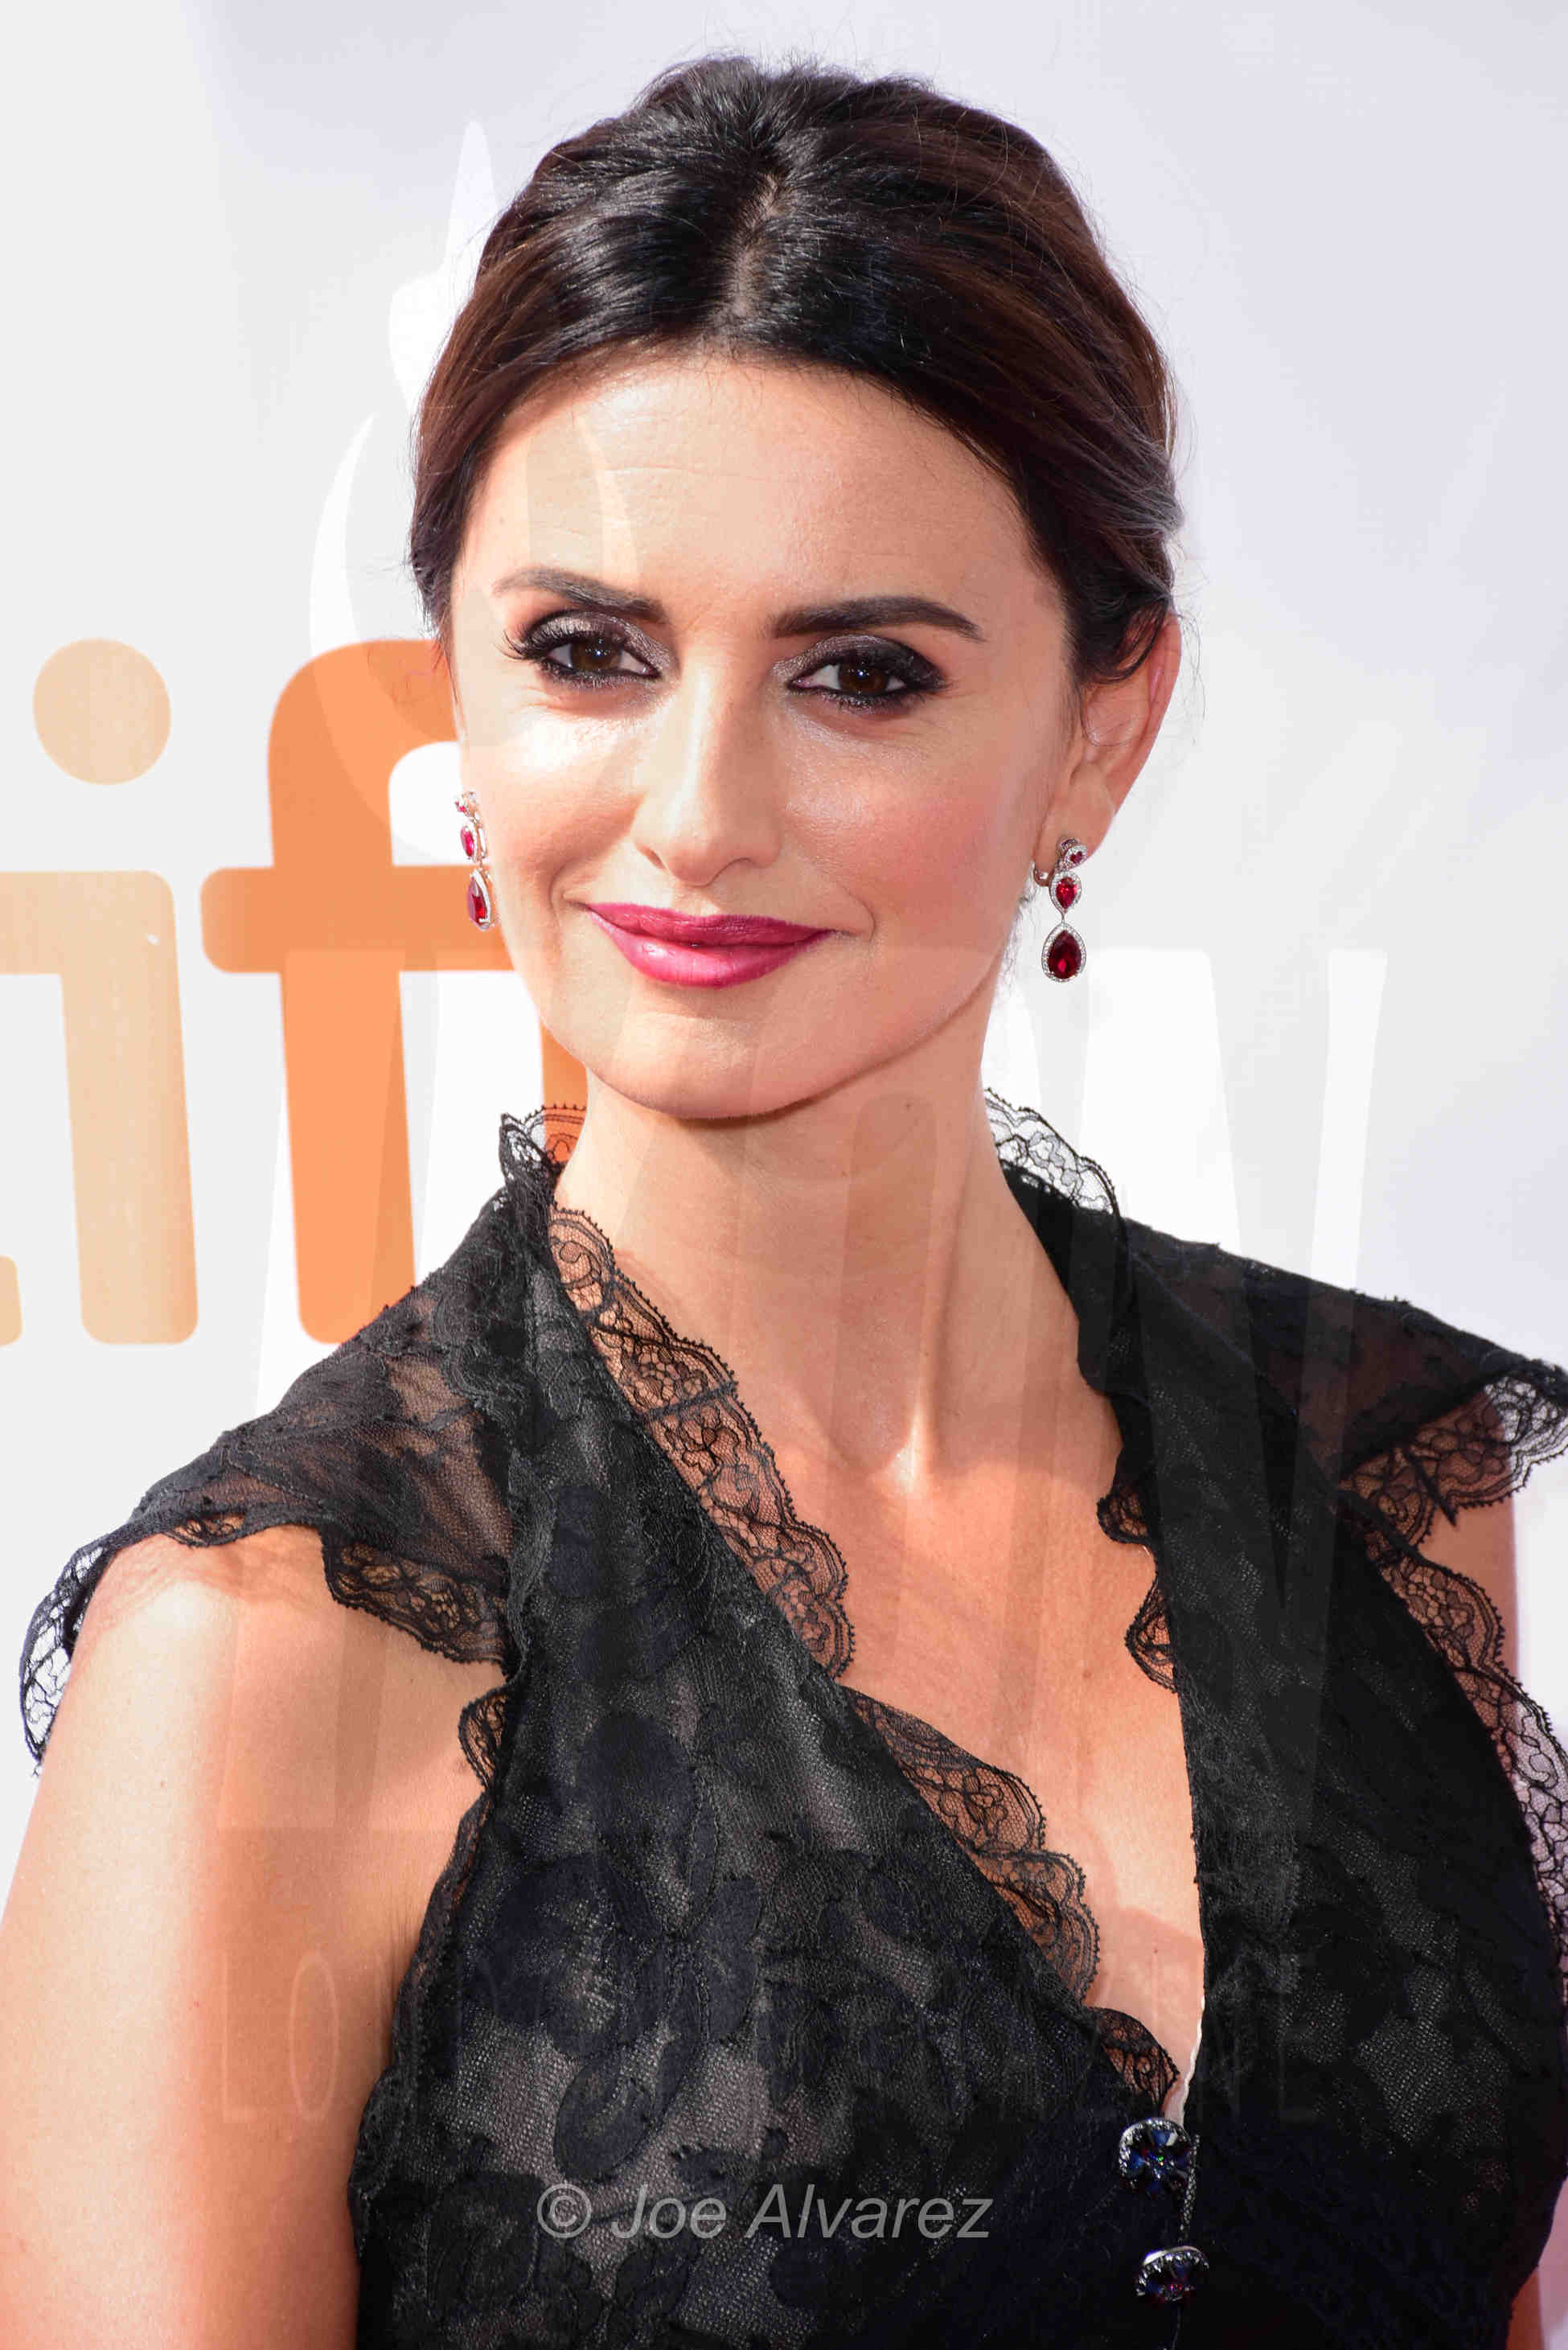 Penelope Cruz at the Toronto premiere of Everybody knows TIFF © Joe Alvarez